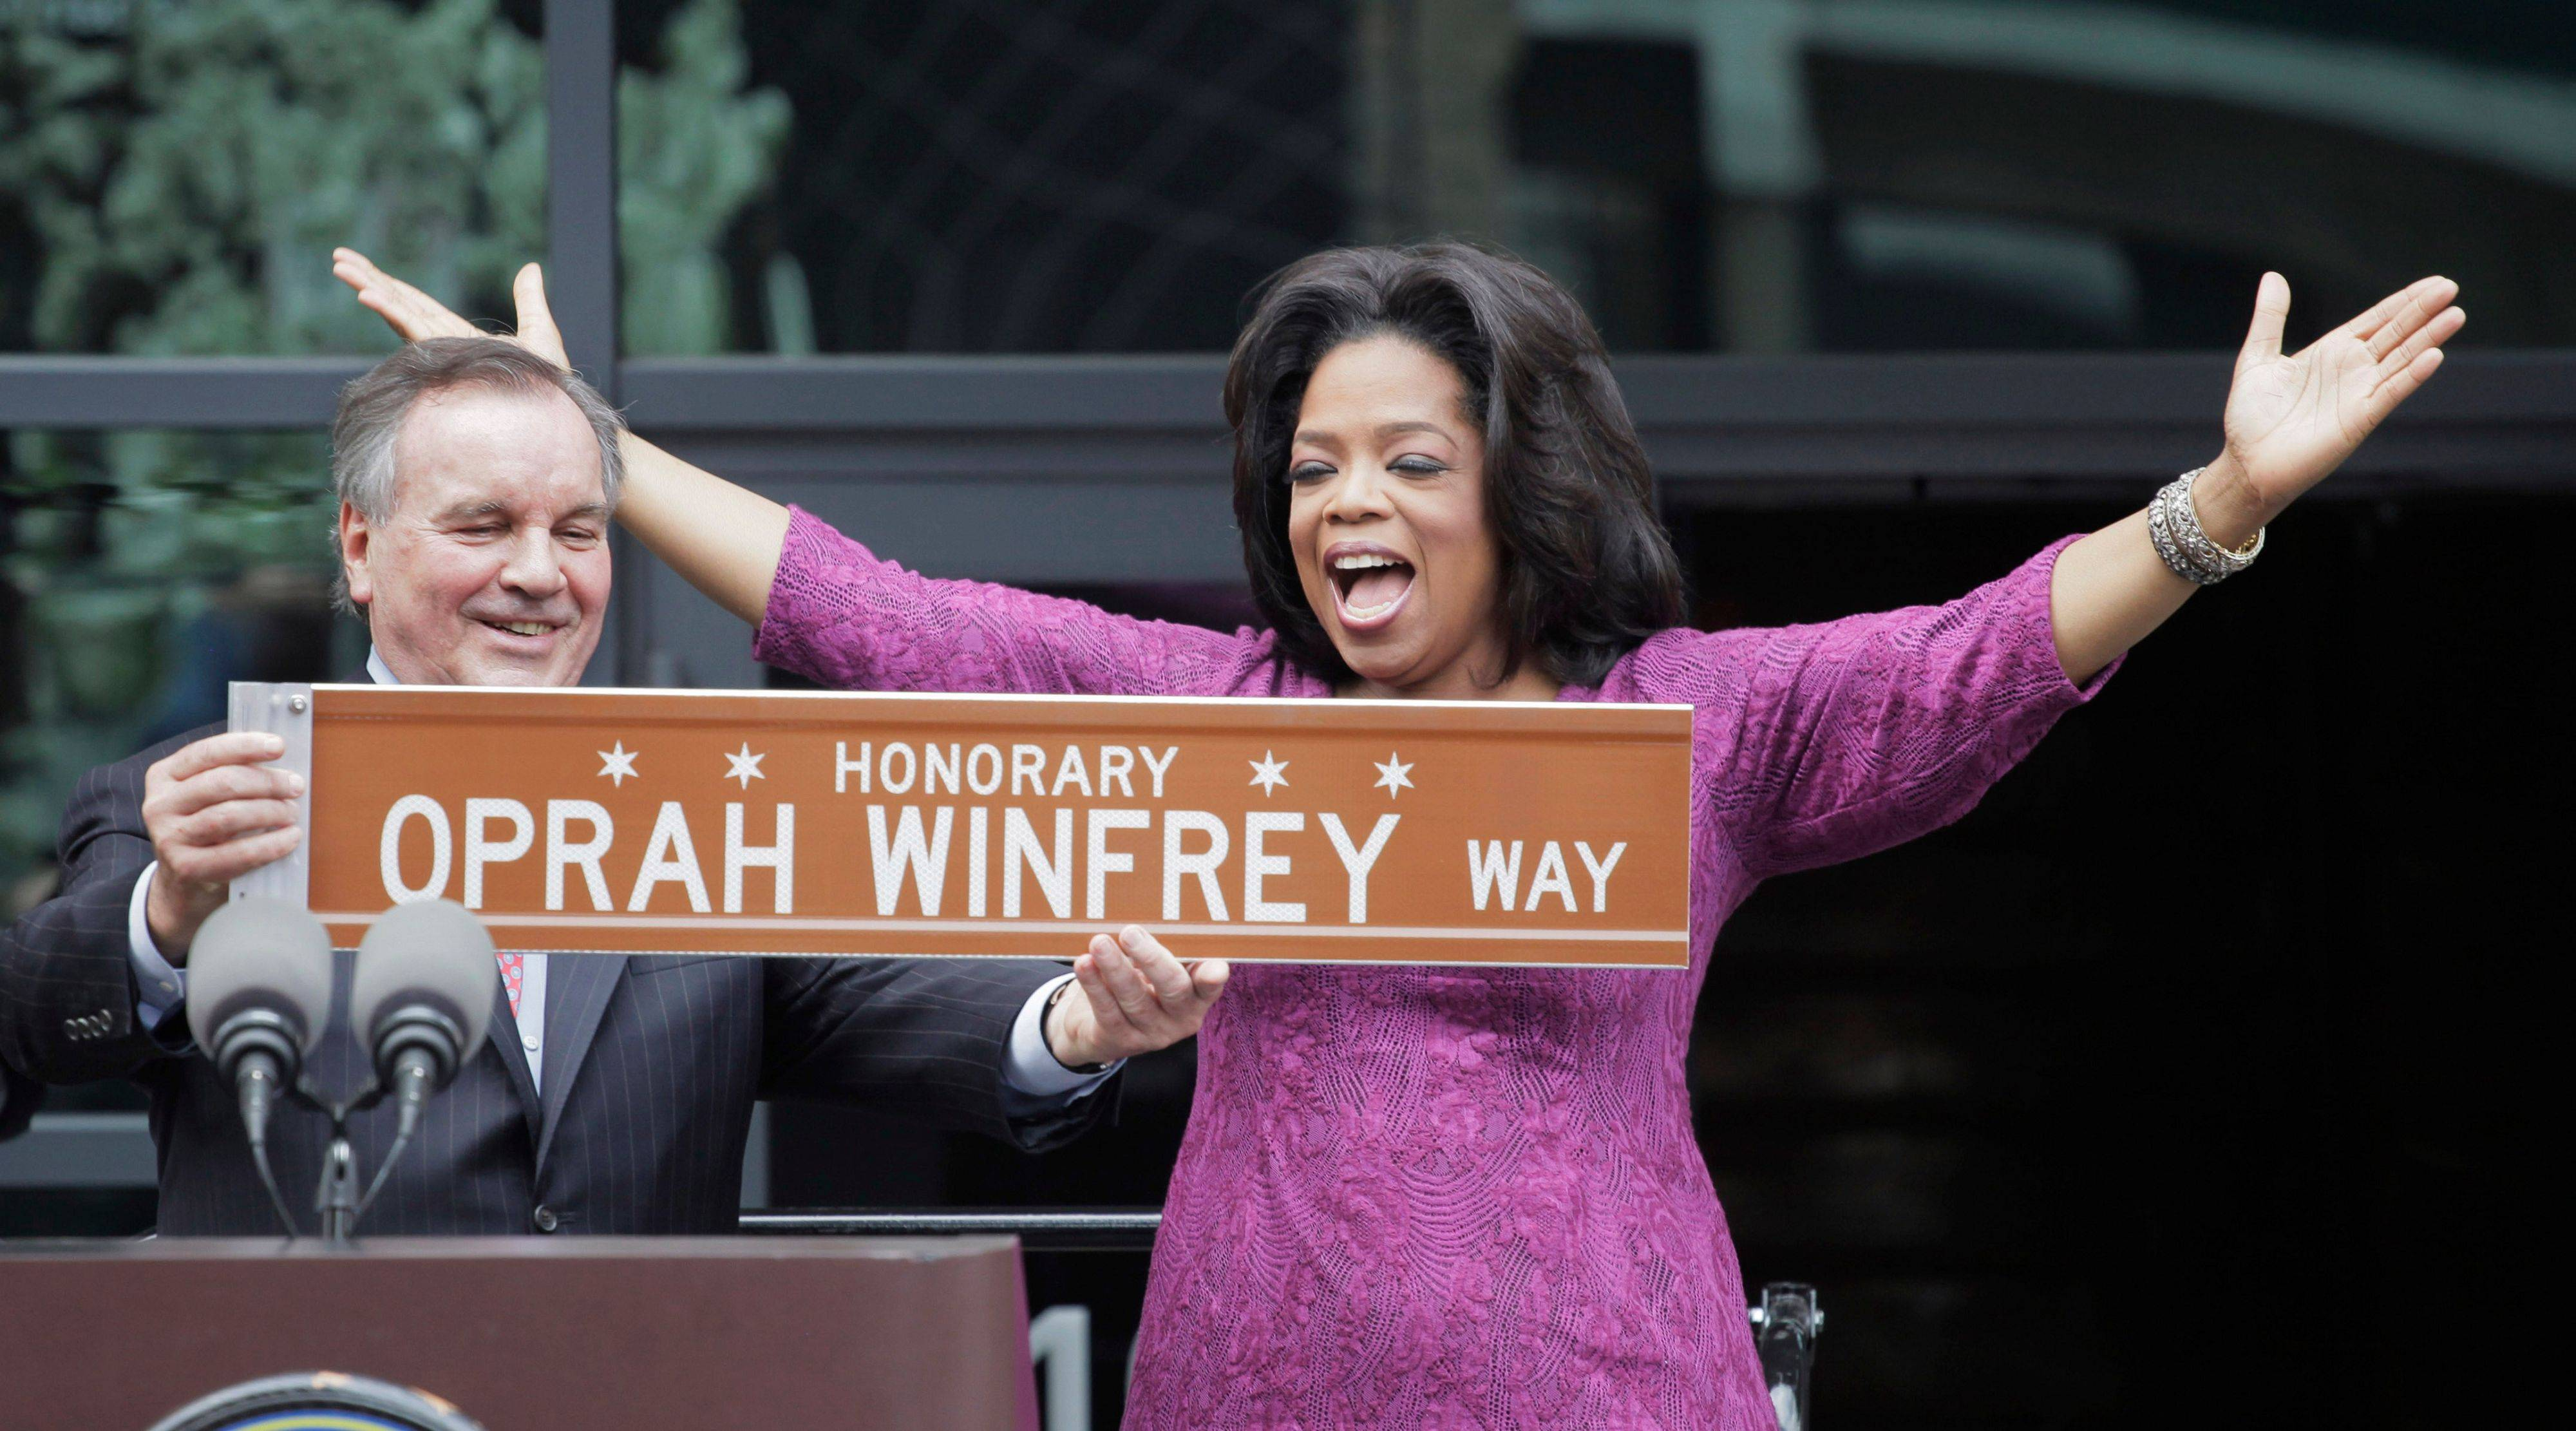 Even when she leaves, Oprah Winfrey won't be gone. In one of his last acts before leaving office, Chicago Mayor Richard M. Daley presented the TV talk-show host a sign after a street was named in her honor outside her Harpo Studios.